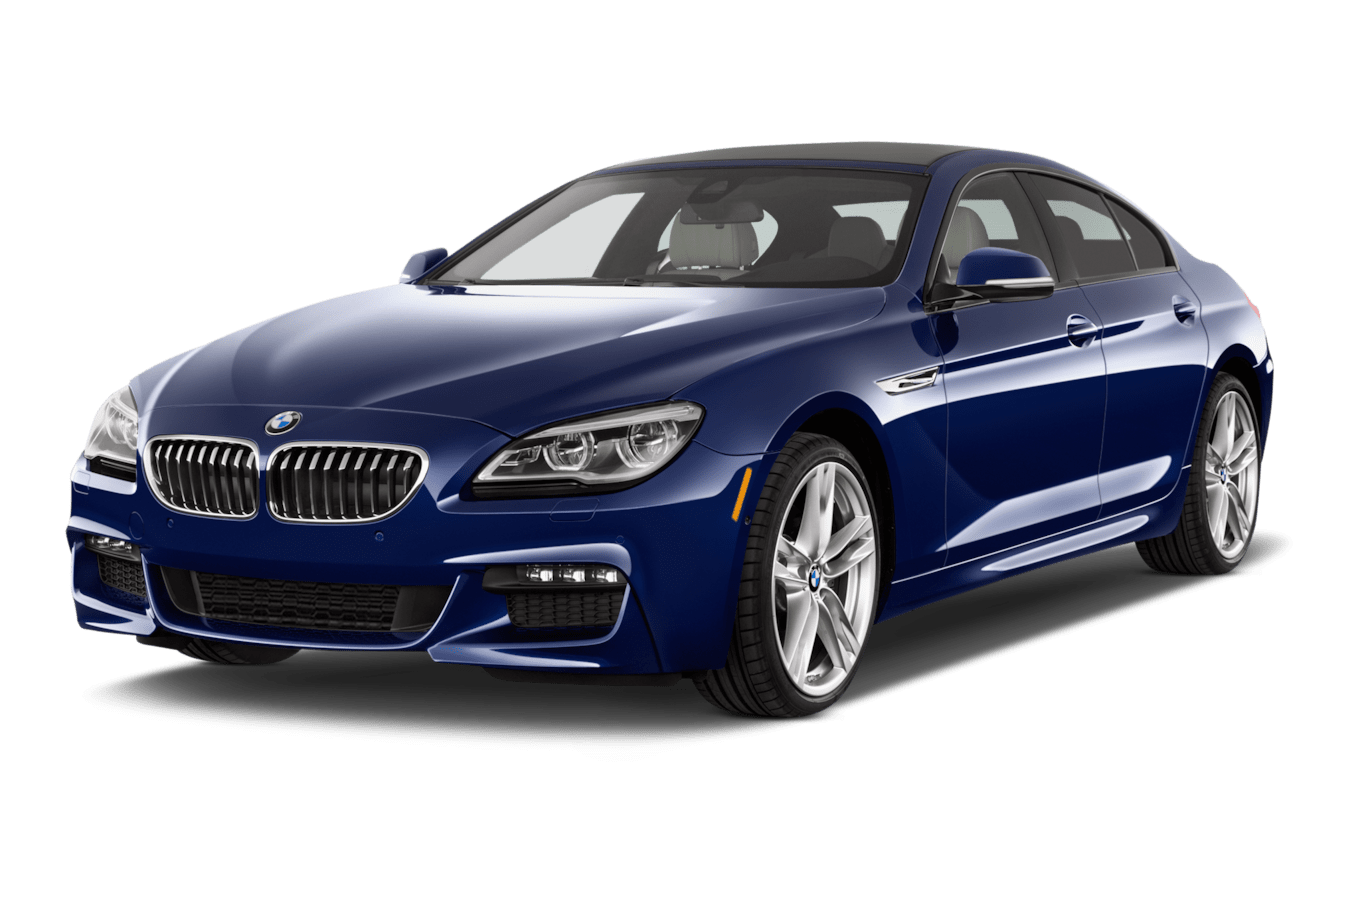 hight resolution of 2014 bmw 535i fuse box location trusted wiring diagram 2014 bmw 535i fuse box location